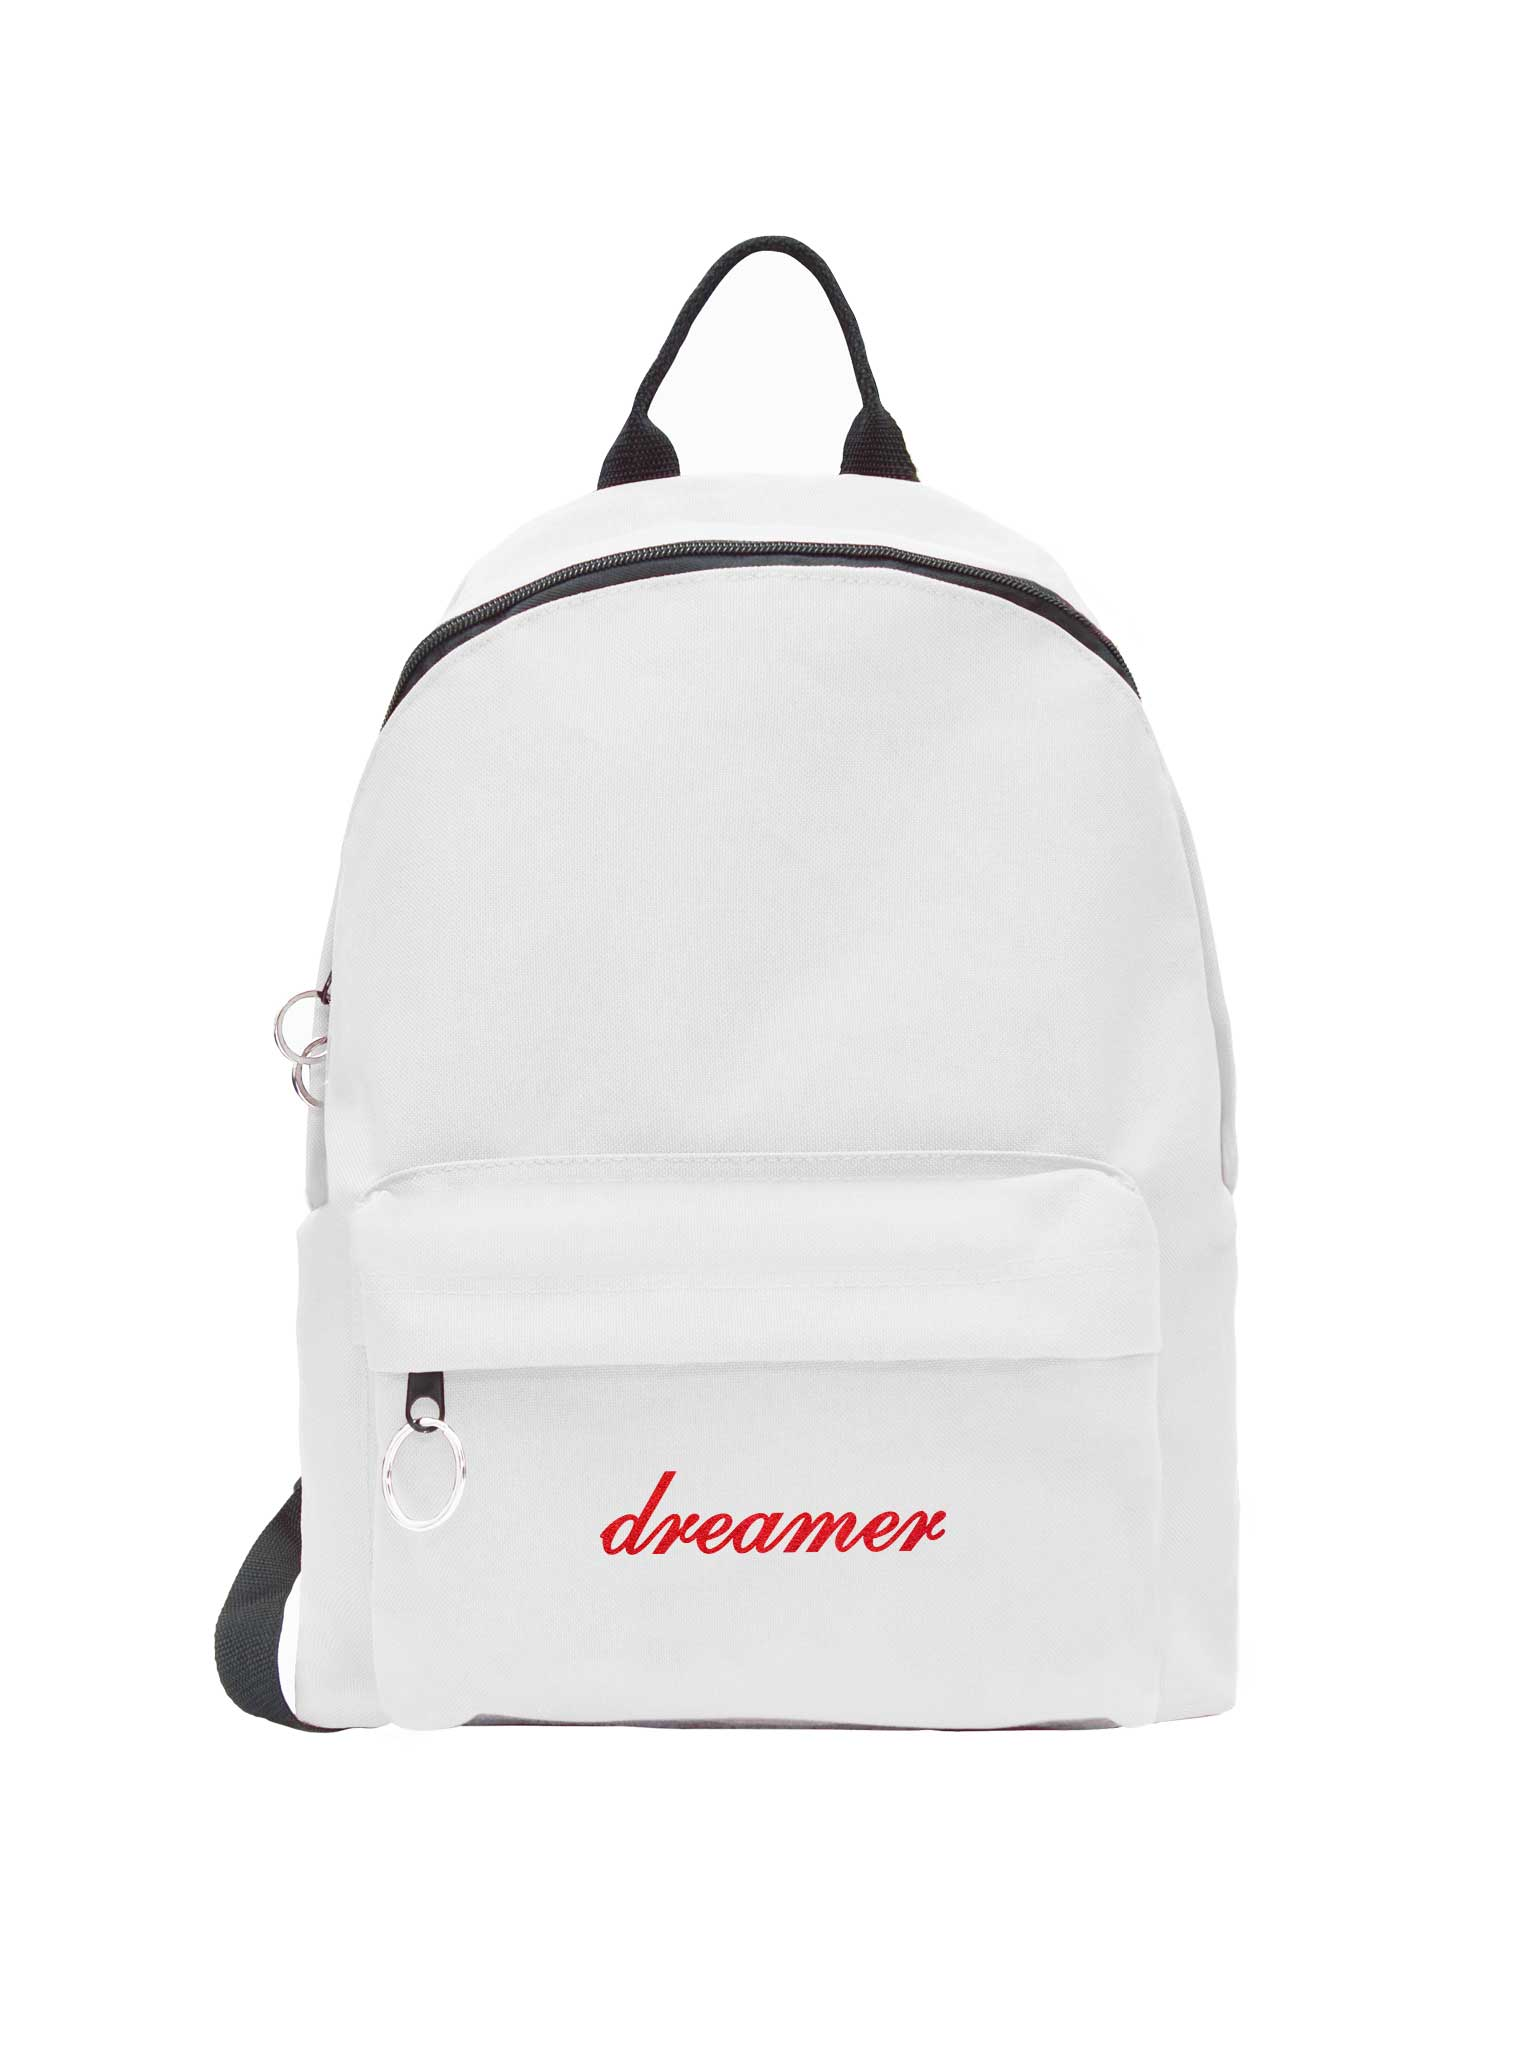 Dreamer Backpack